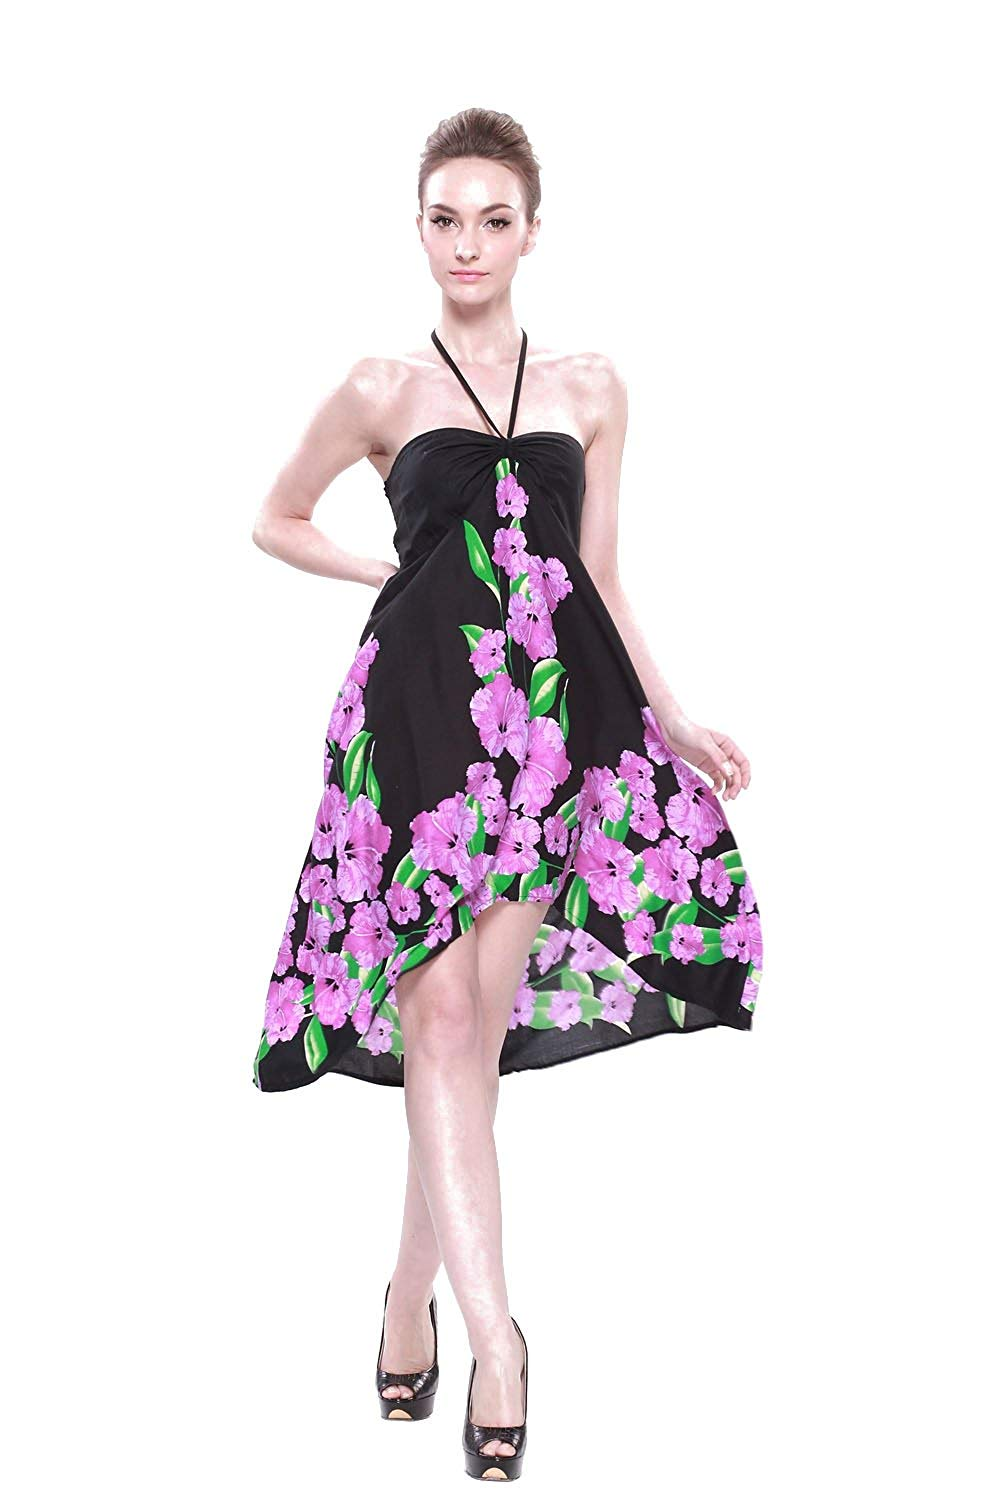 7f83c9de1 Get Quotations · LLJ Hawaii Women s Hawaiian Butterfly Dress in Black with  Purple Hibiscus Print